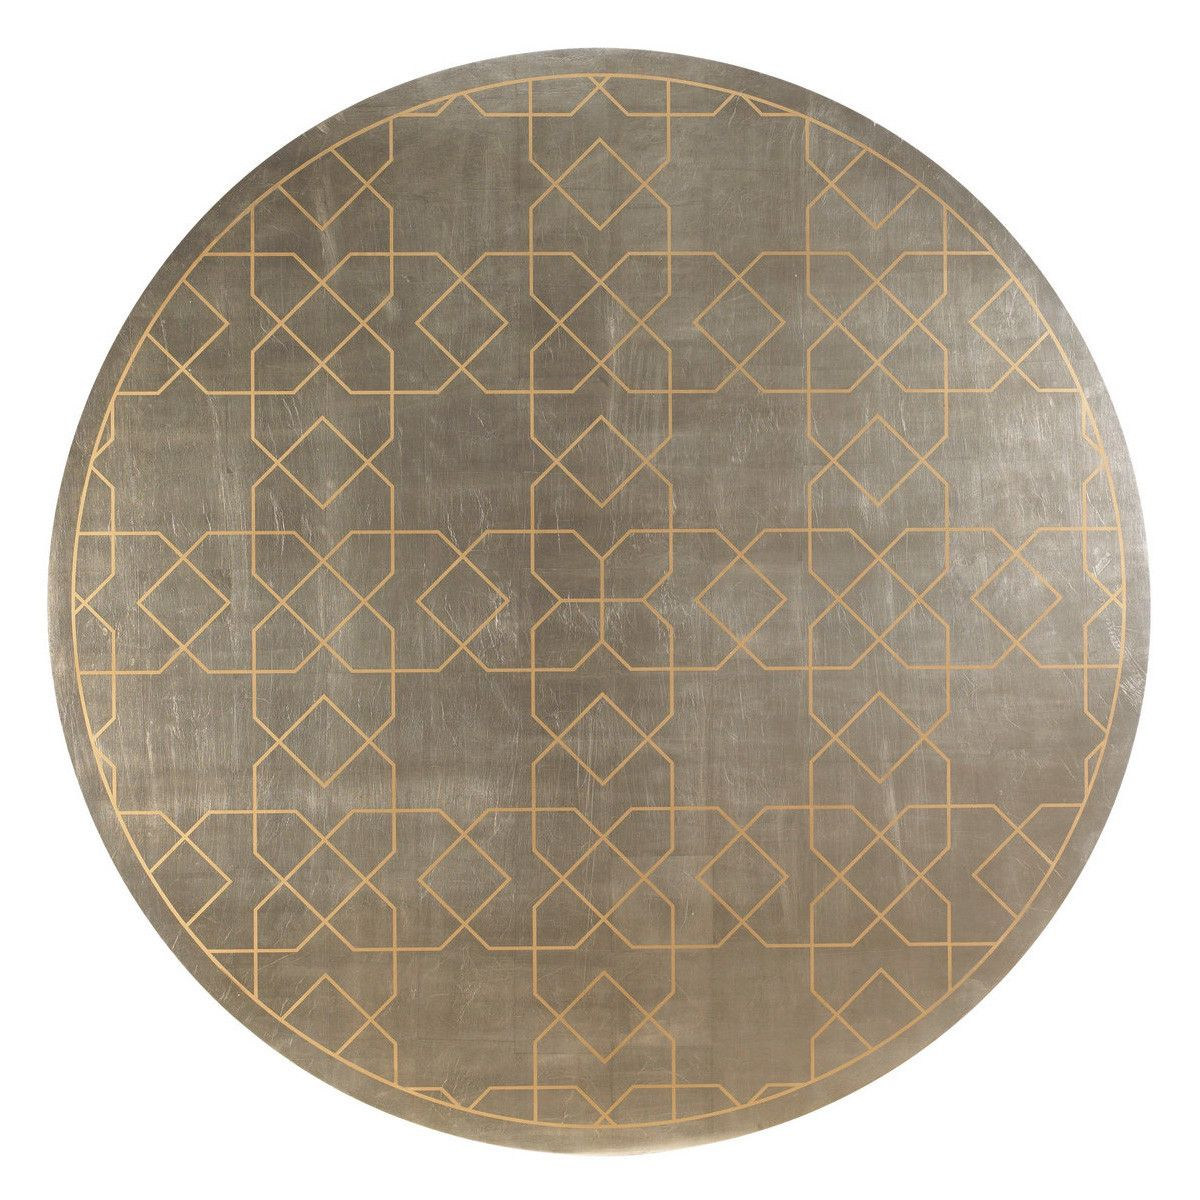 Dinner table top view - Trellis Silver Leaf Dining Table Max Sparrow